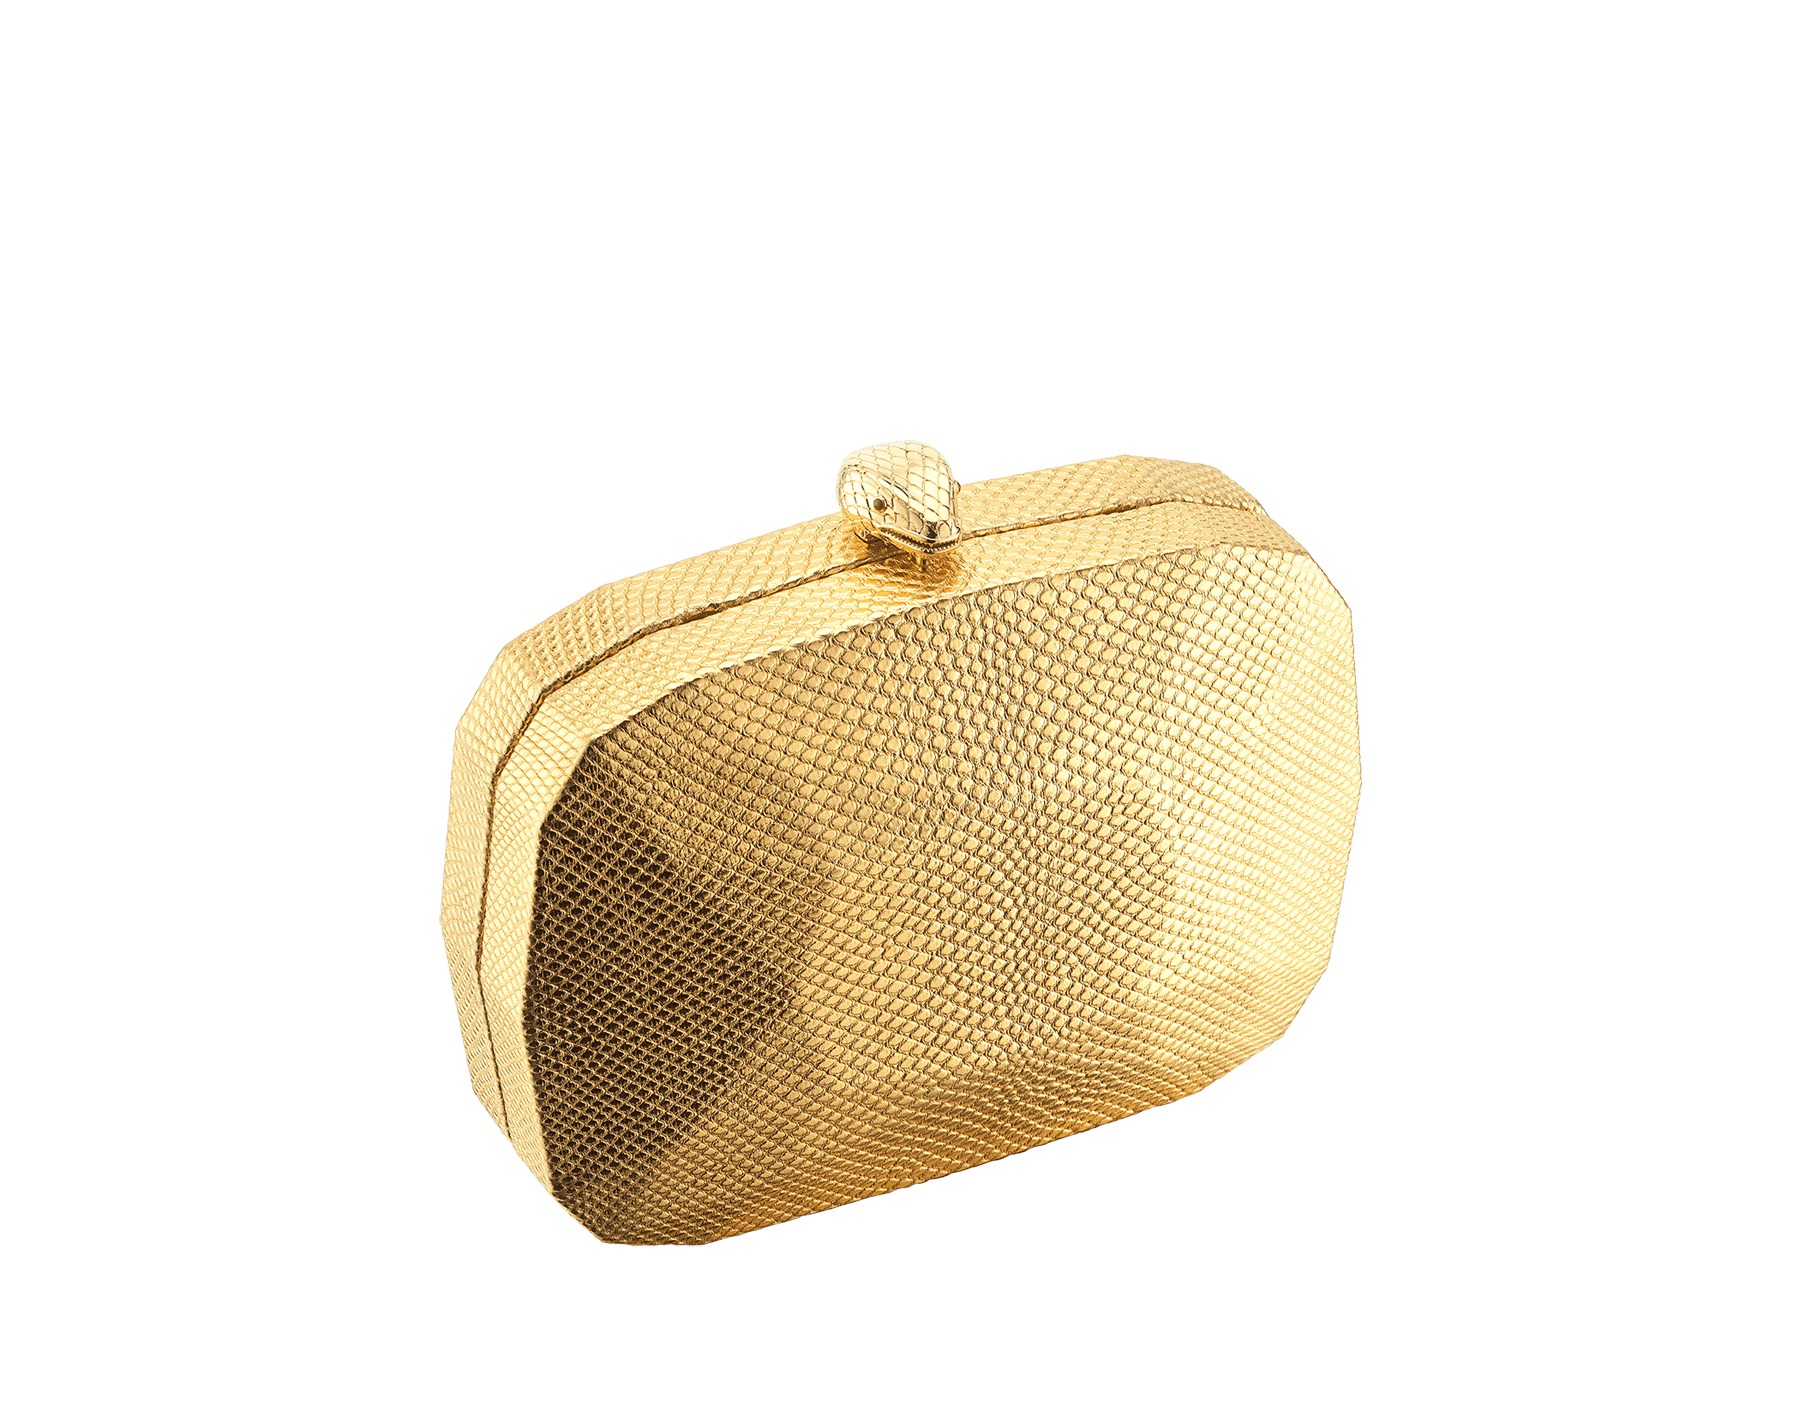 """""""BVLGARI Cocktail"""" hard clutch in """"Molten"""" gold karung skin with black nappa leather inner lining. New Serpenti head closure in gold-plated brass complete with ruby-red enamel eyes. 526-BRILLIANTCUT image 1"""